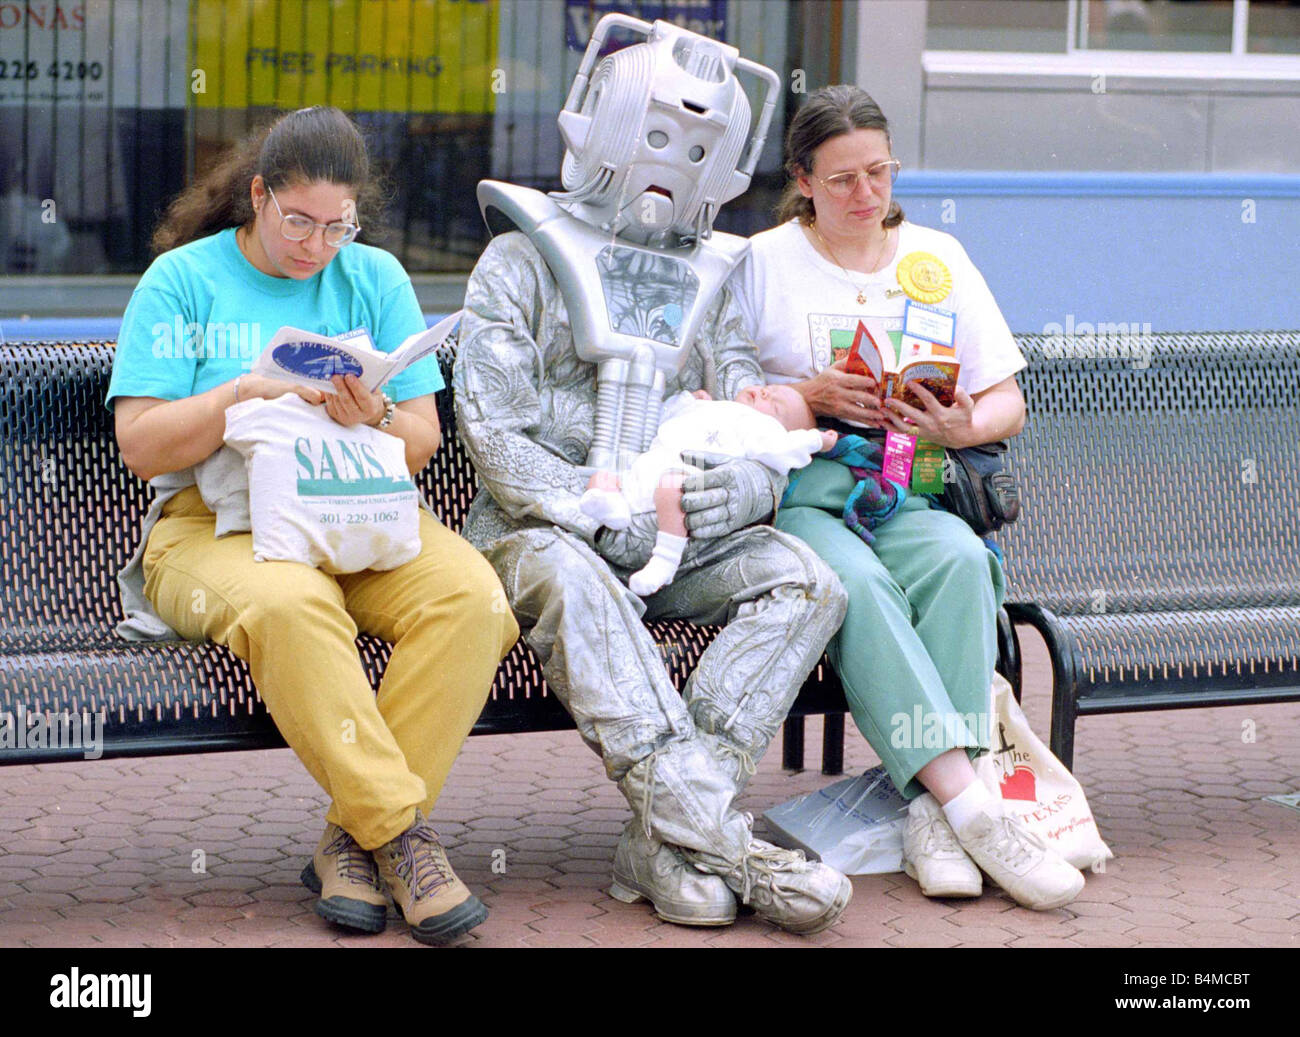 Person in robot outfit sits down on bench next to two women shoppers reading their books before a Sci Fi convention - Stock Image